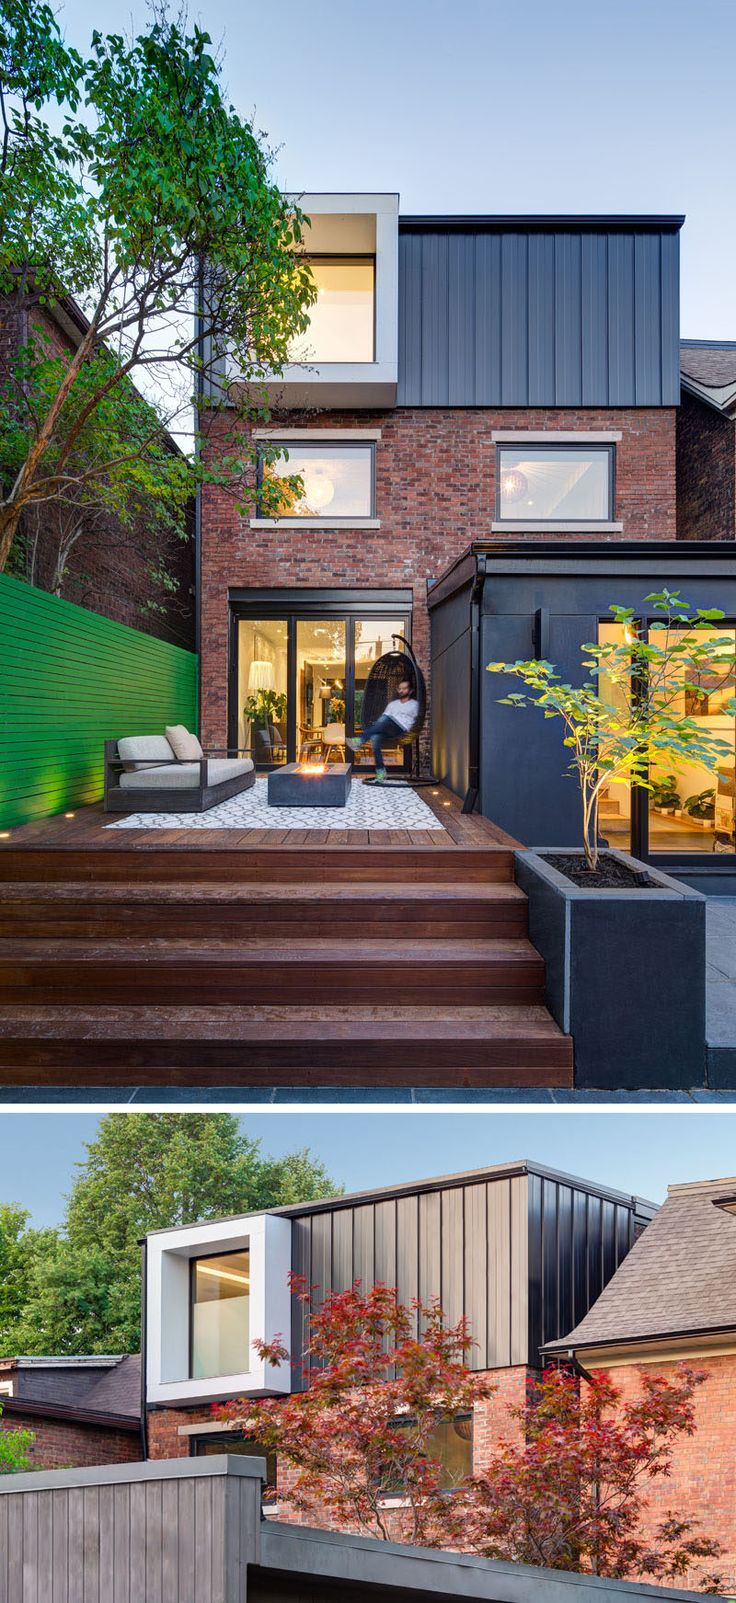 At the rear of this renovated Canadian home, there's a deck with an outdoor fireplace that overlooks the rest of the backyard. There's also a new dormer that was added to the back wall of the home to provide privacy.